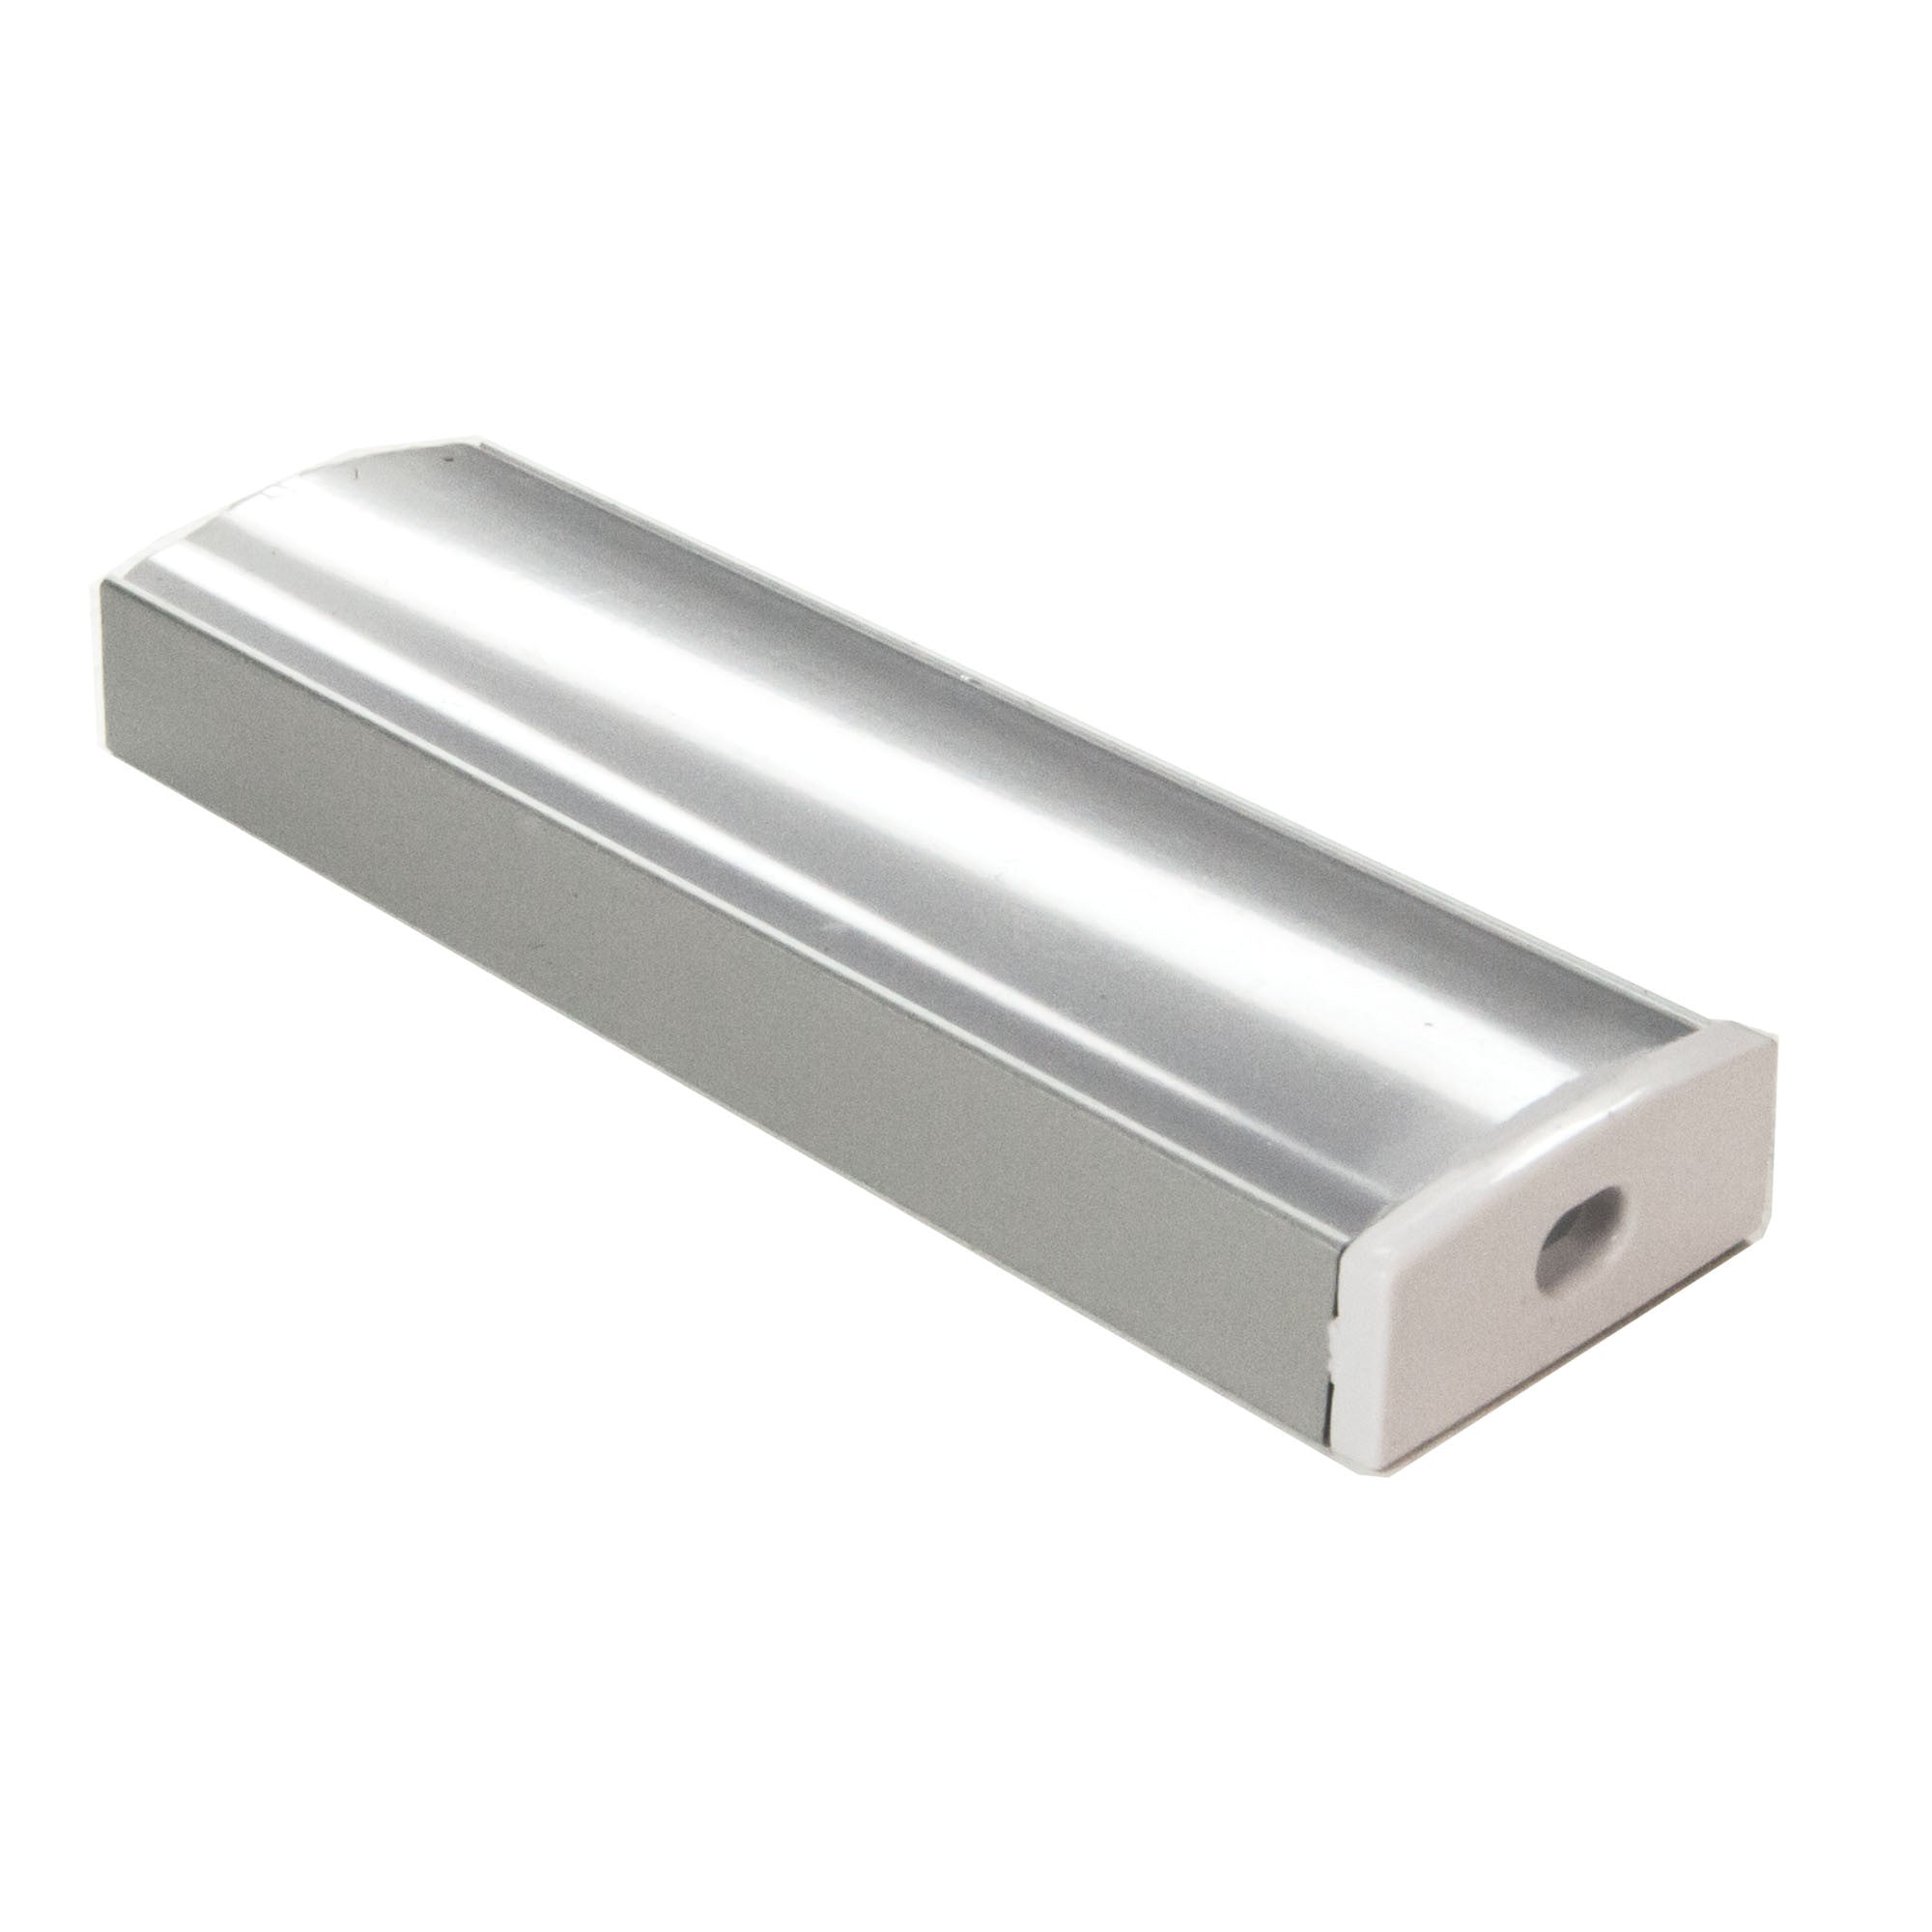 Aluminum Channel - MOSS-ALM-2210 - Moss LED